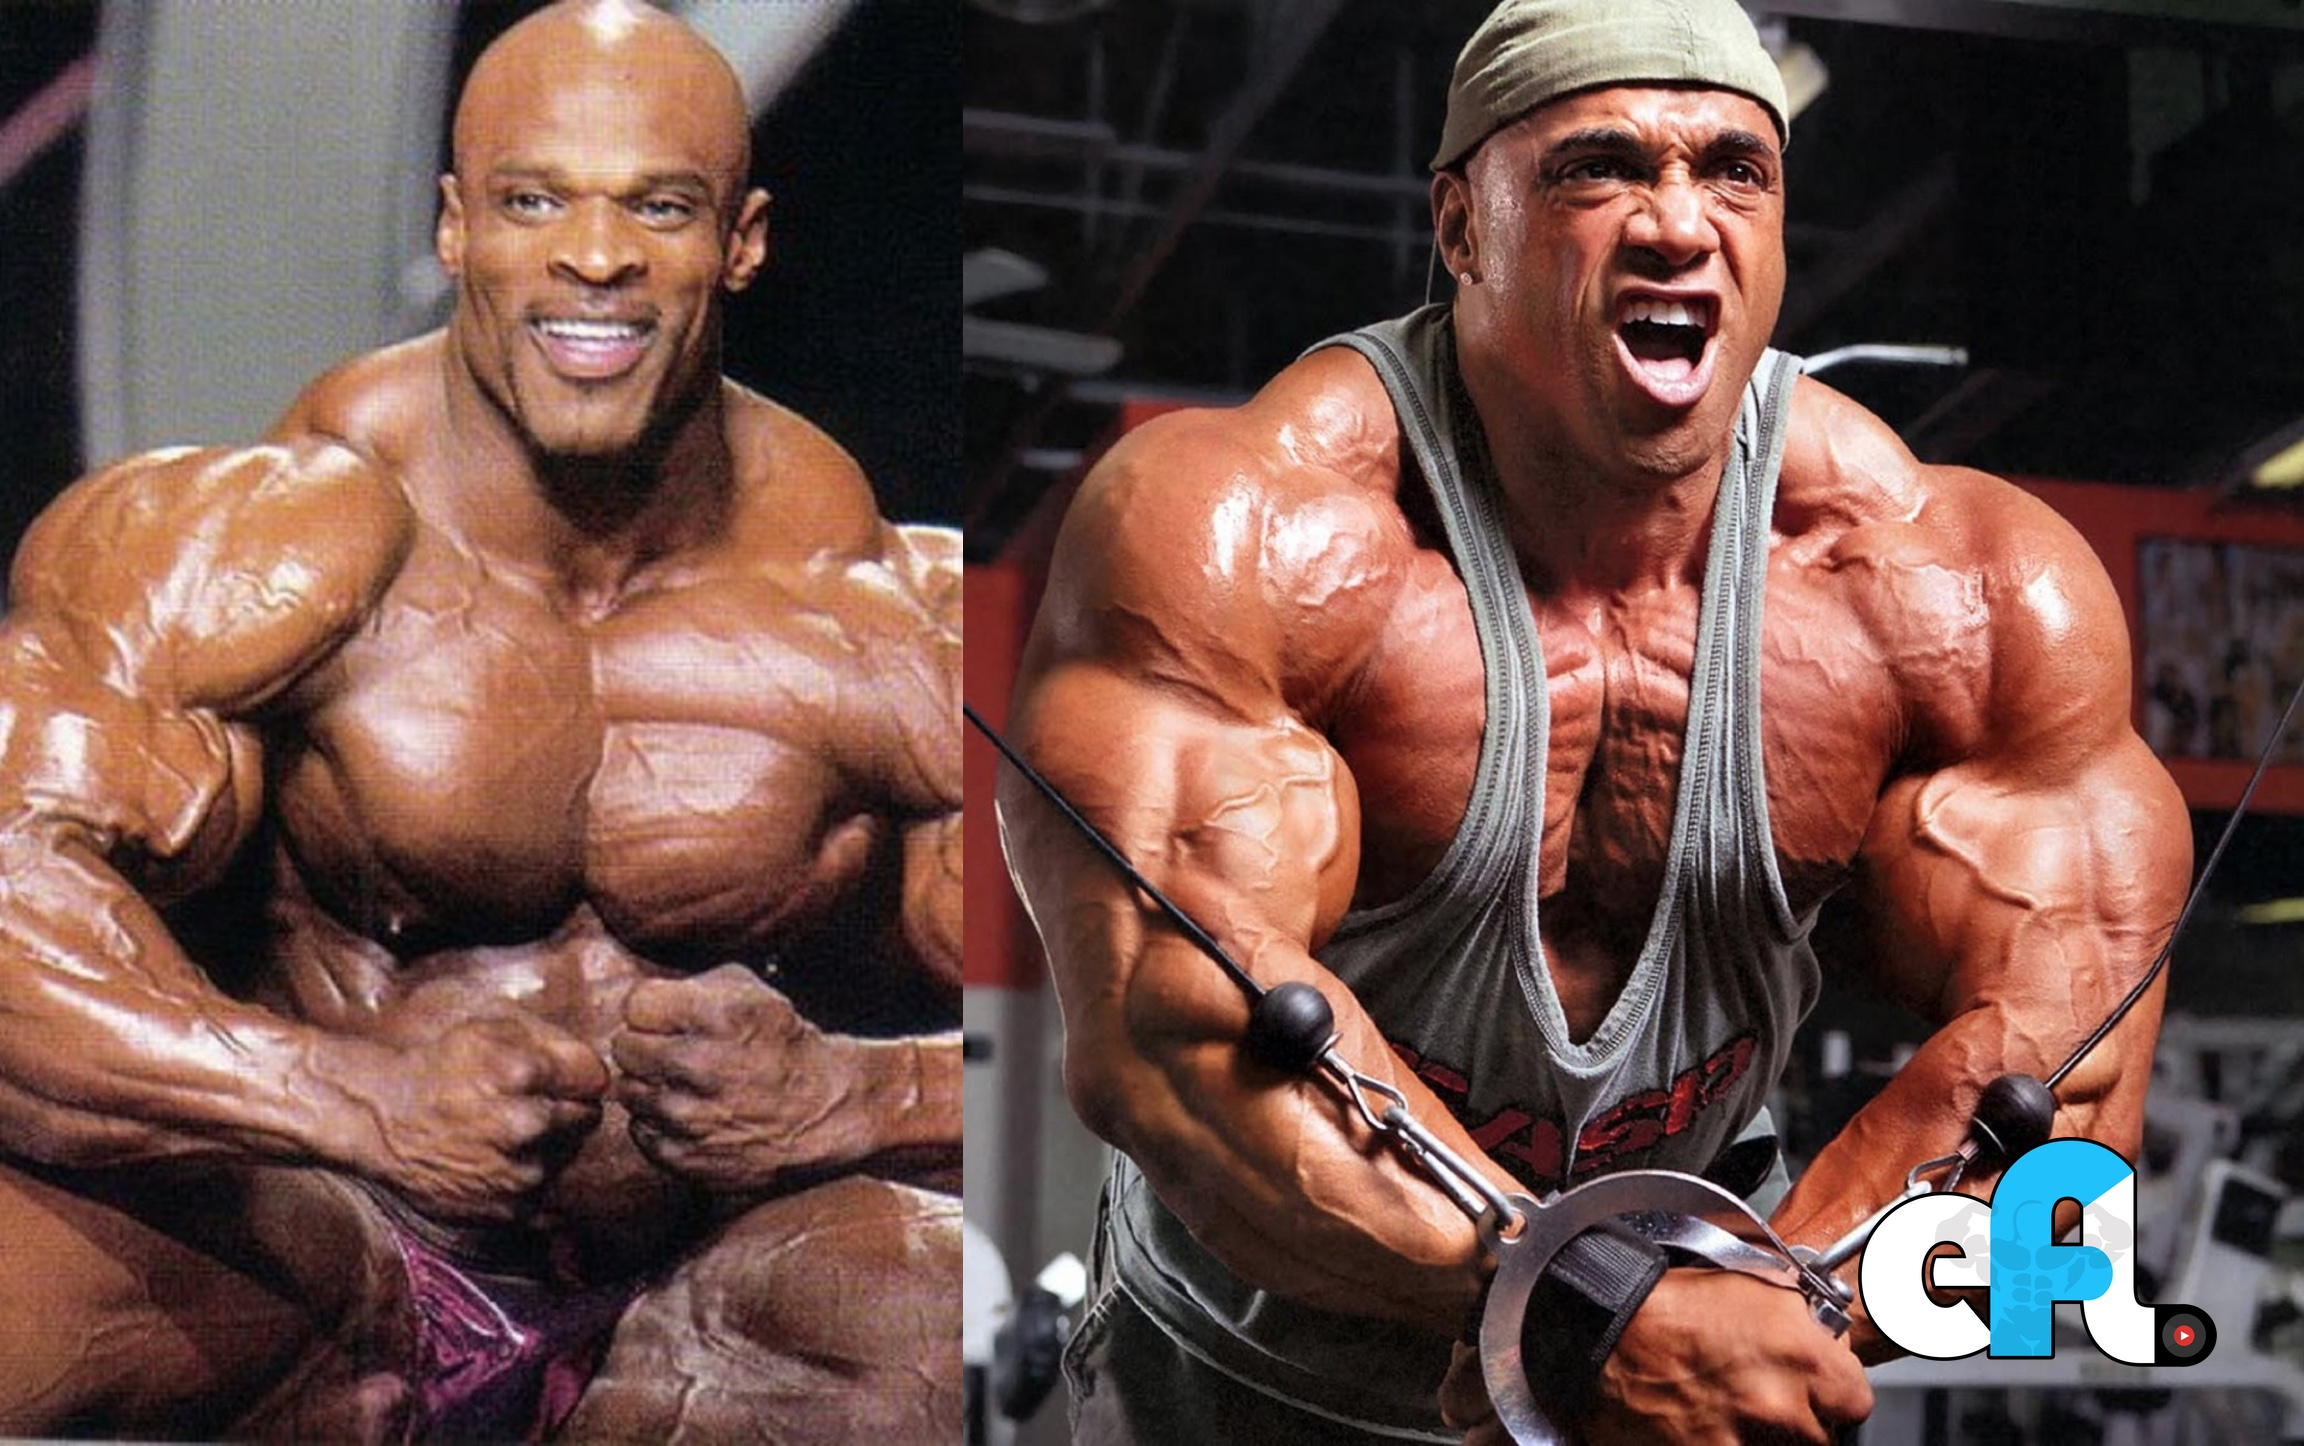 Top 15 Biggest Bodybuilders of All Time